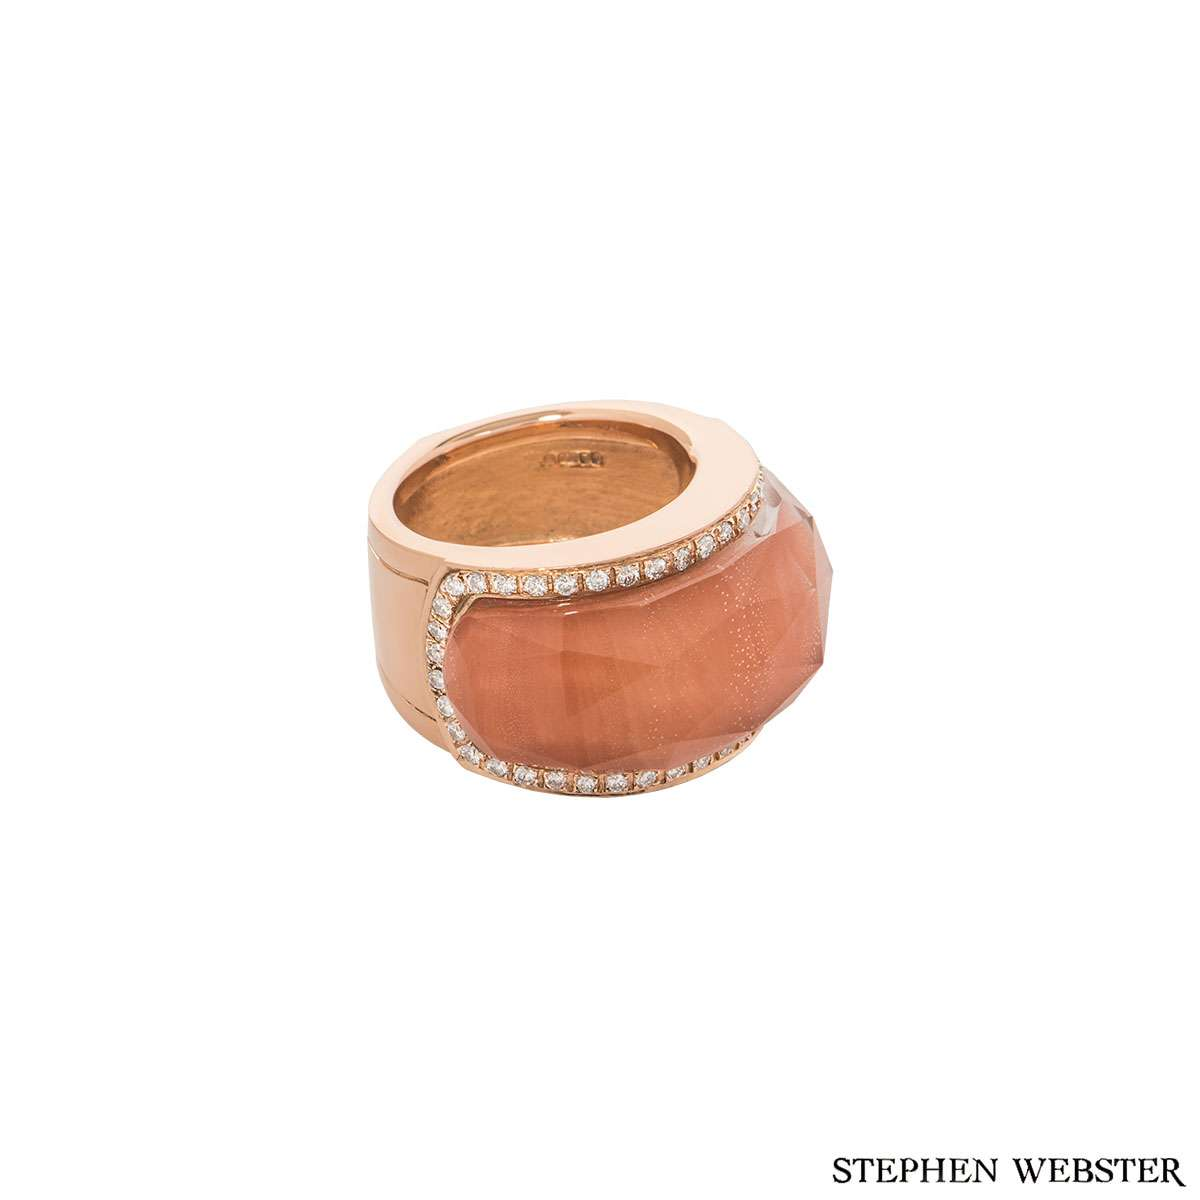 Stephen Webster Rose Gold Crystal Haze Coral and Diamond Ring